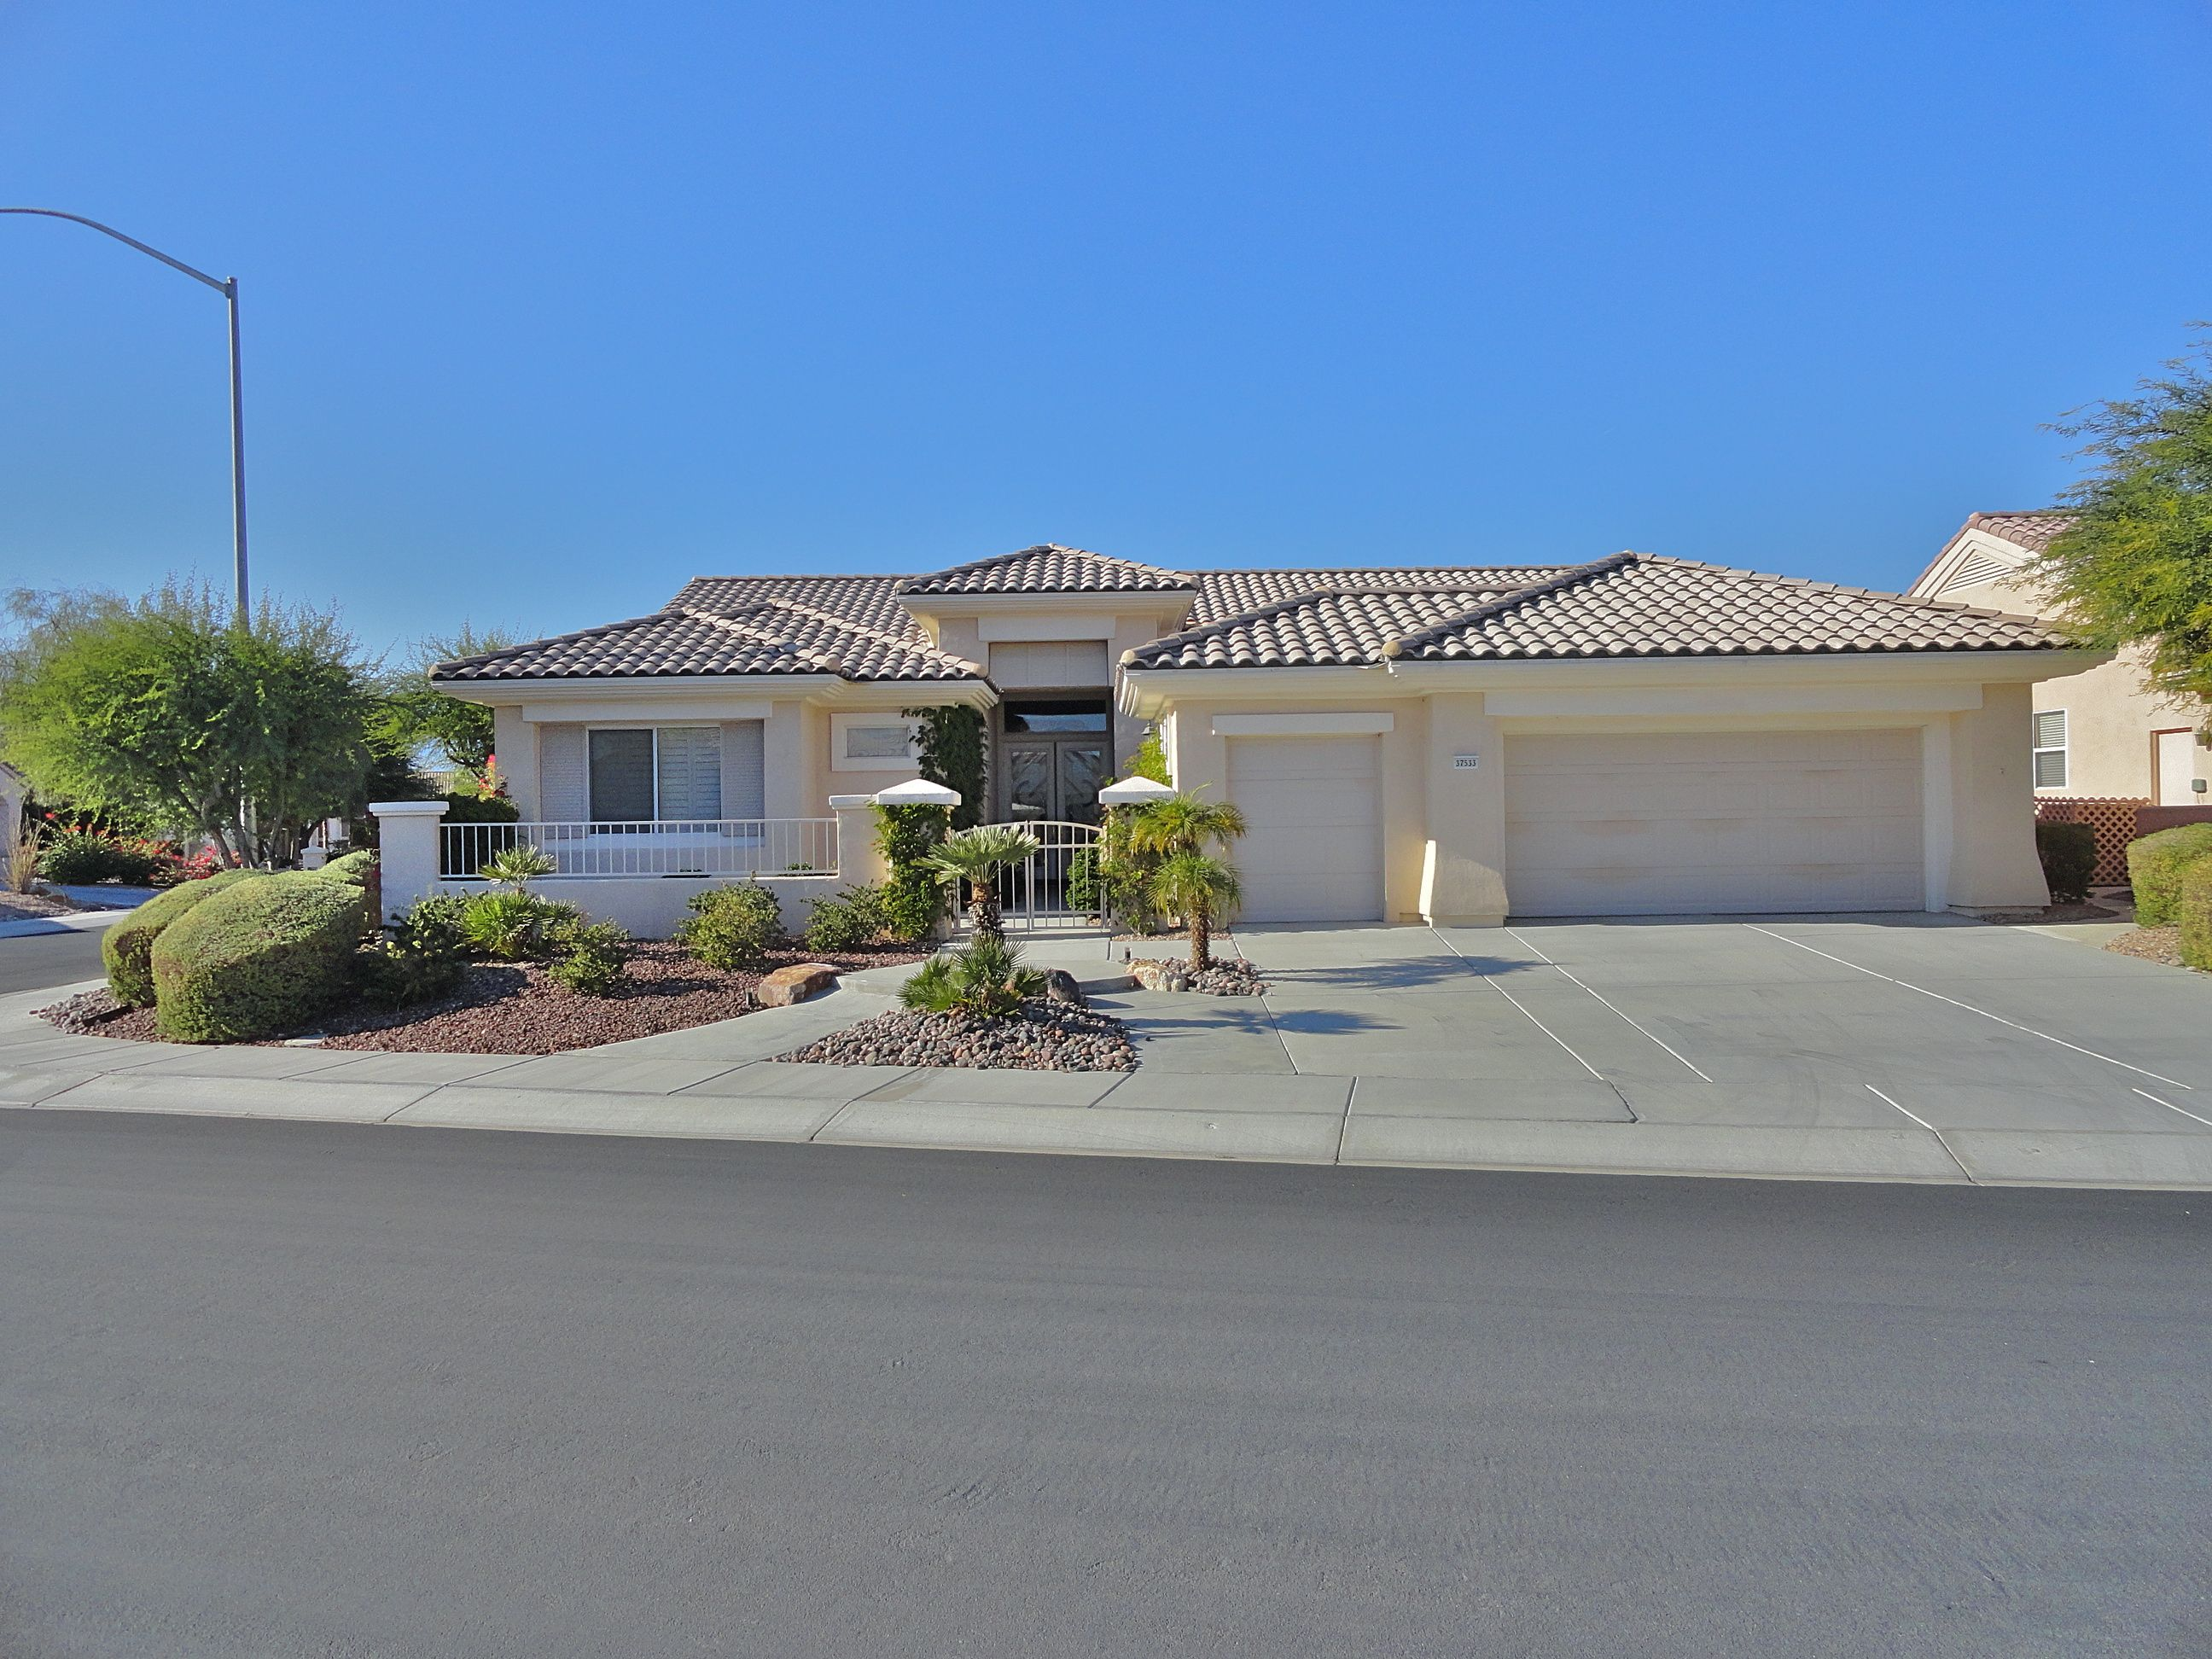 Pin on Palm Desert, CA Real Estate For Sale or Sold